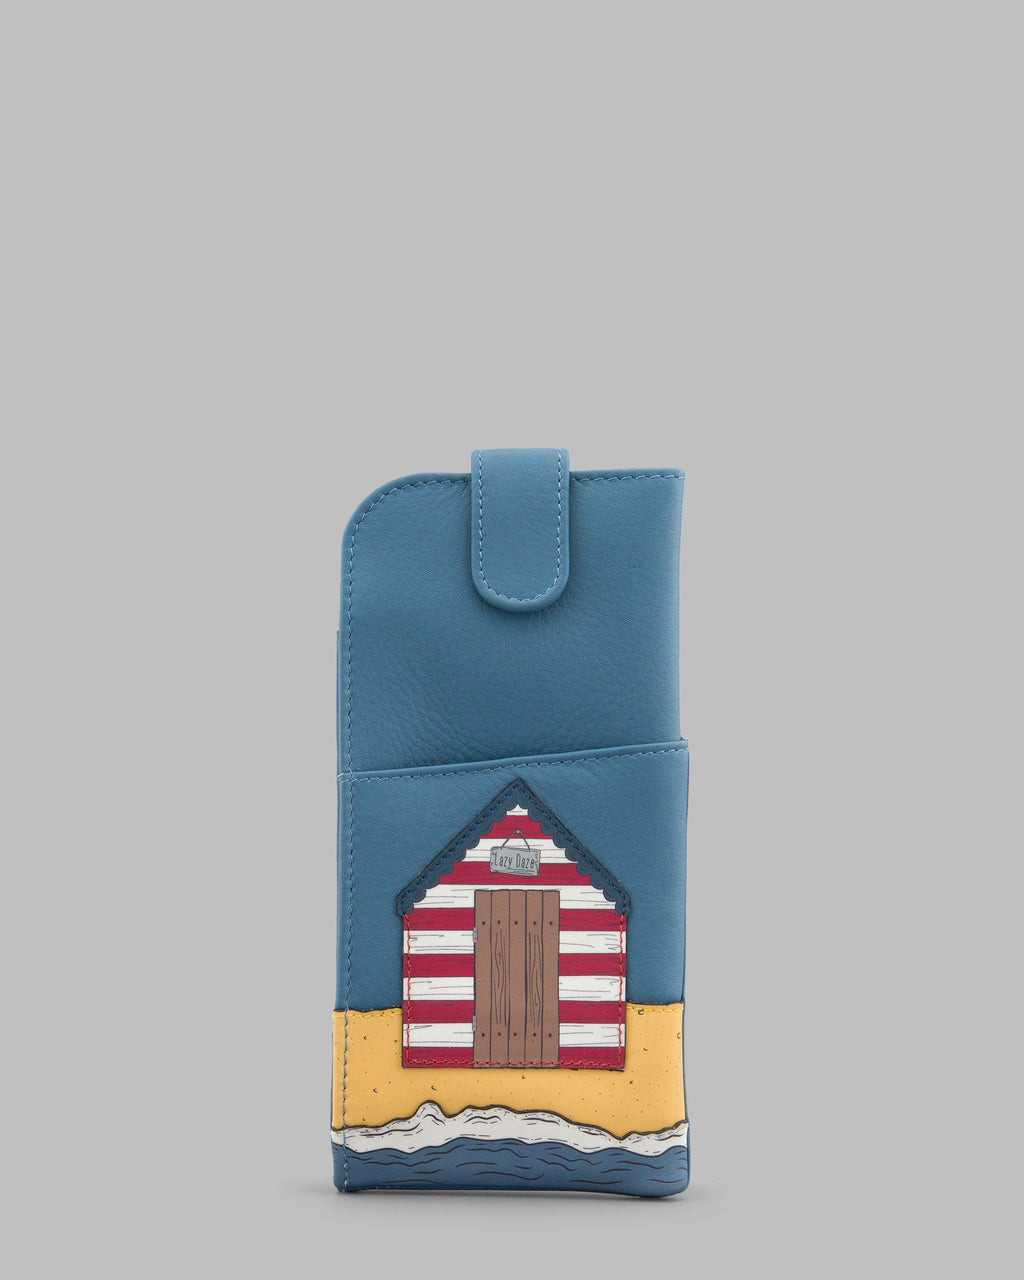 Lazy Daze Beach Huts Blue Leather Glasses Case A